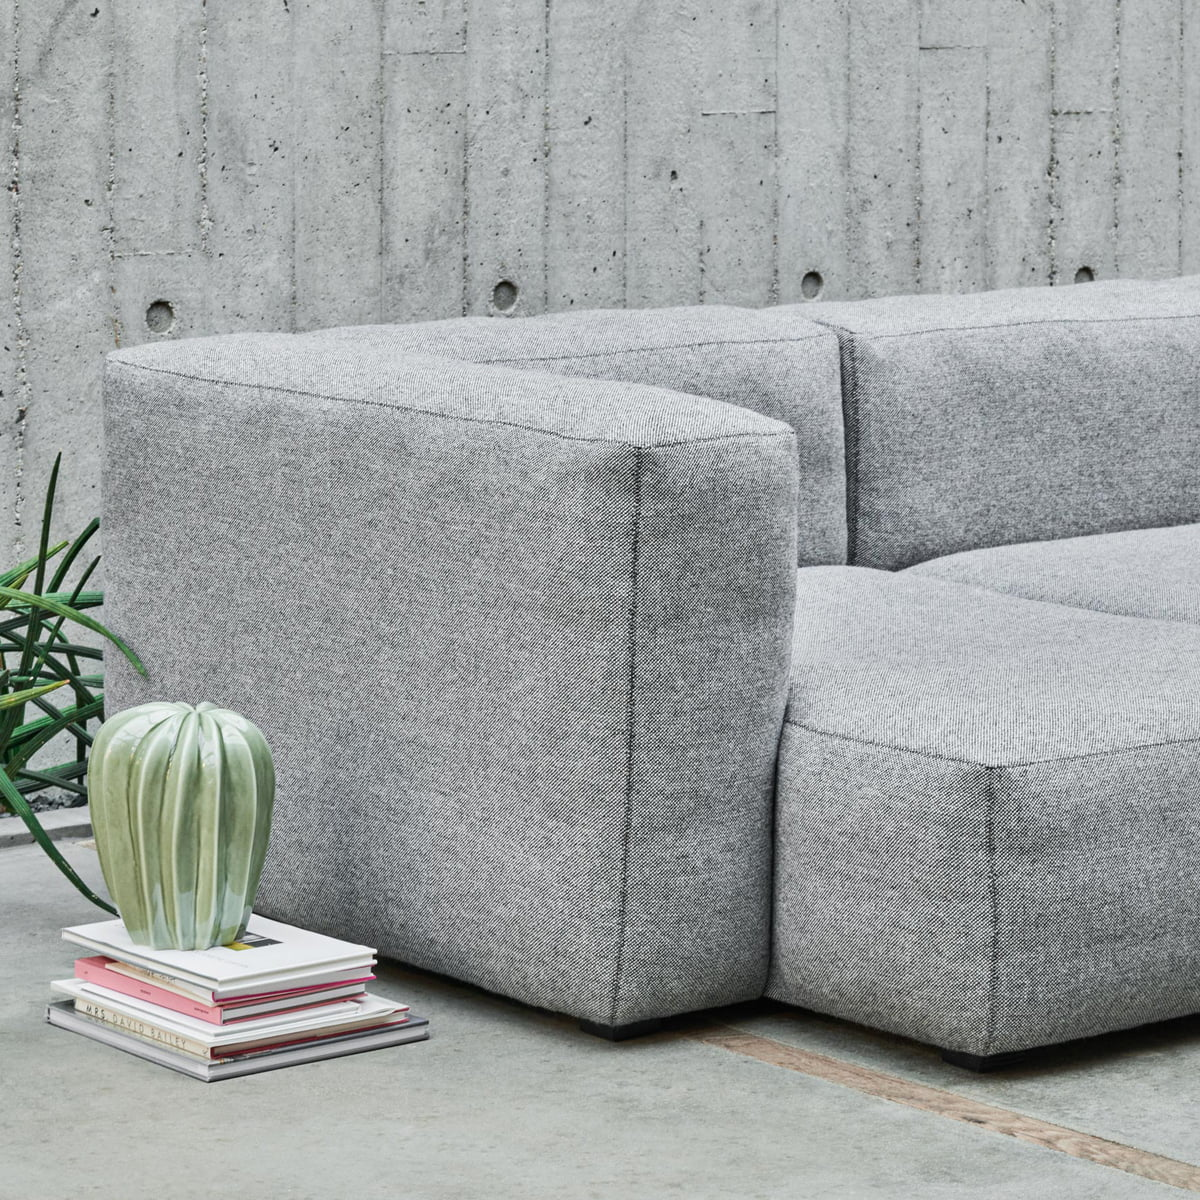 Superb Hay   Mags Soft Sofa, 3 Seater, Hallingdal 116 With Cactus